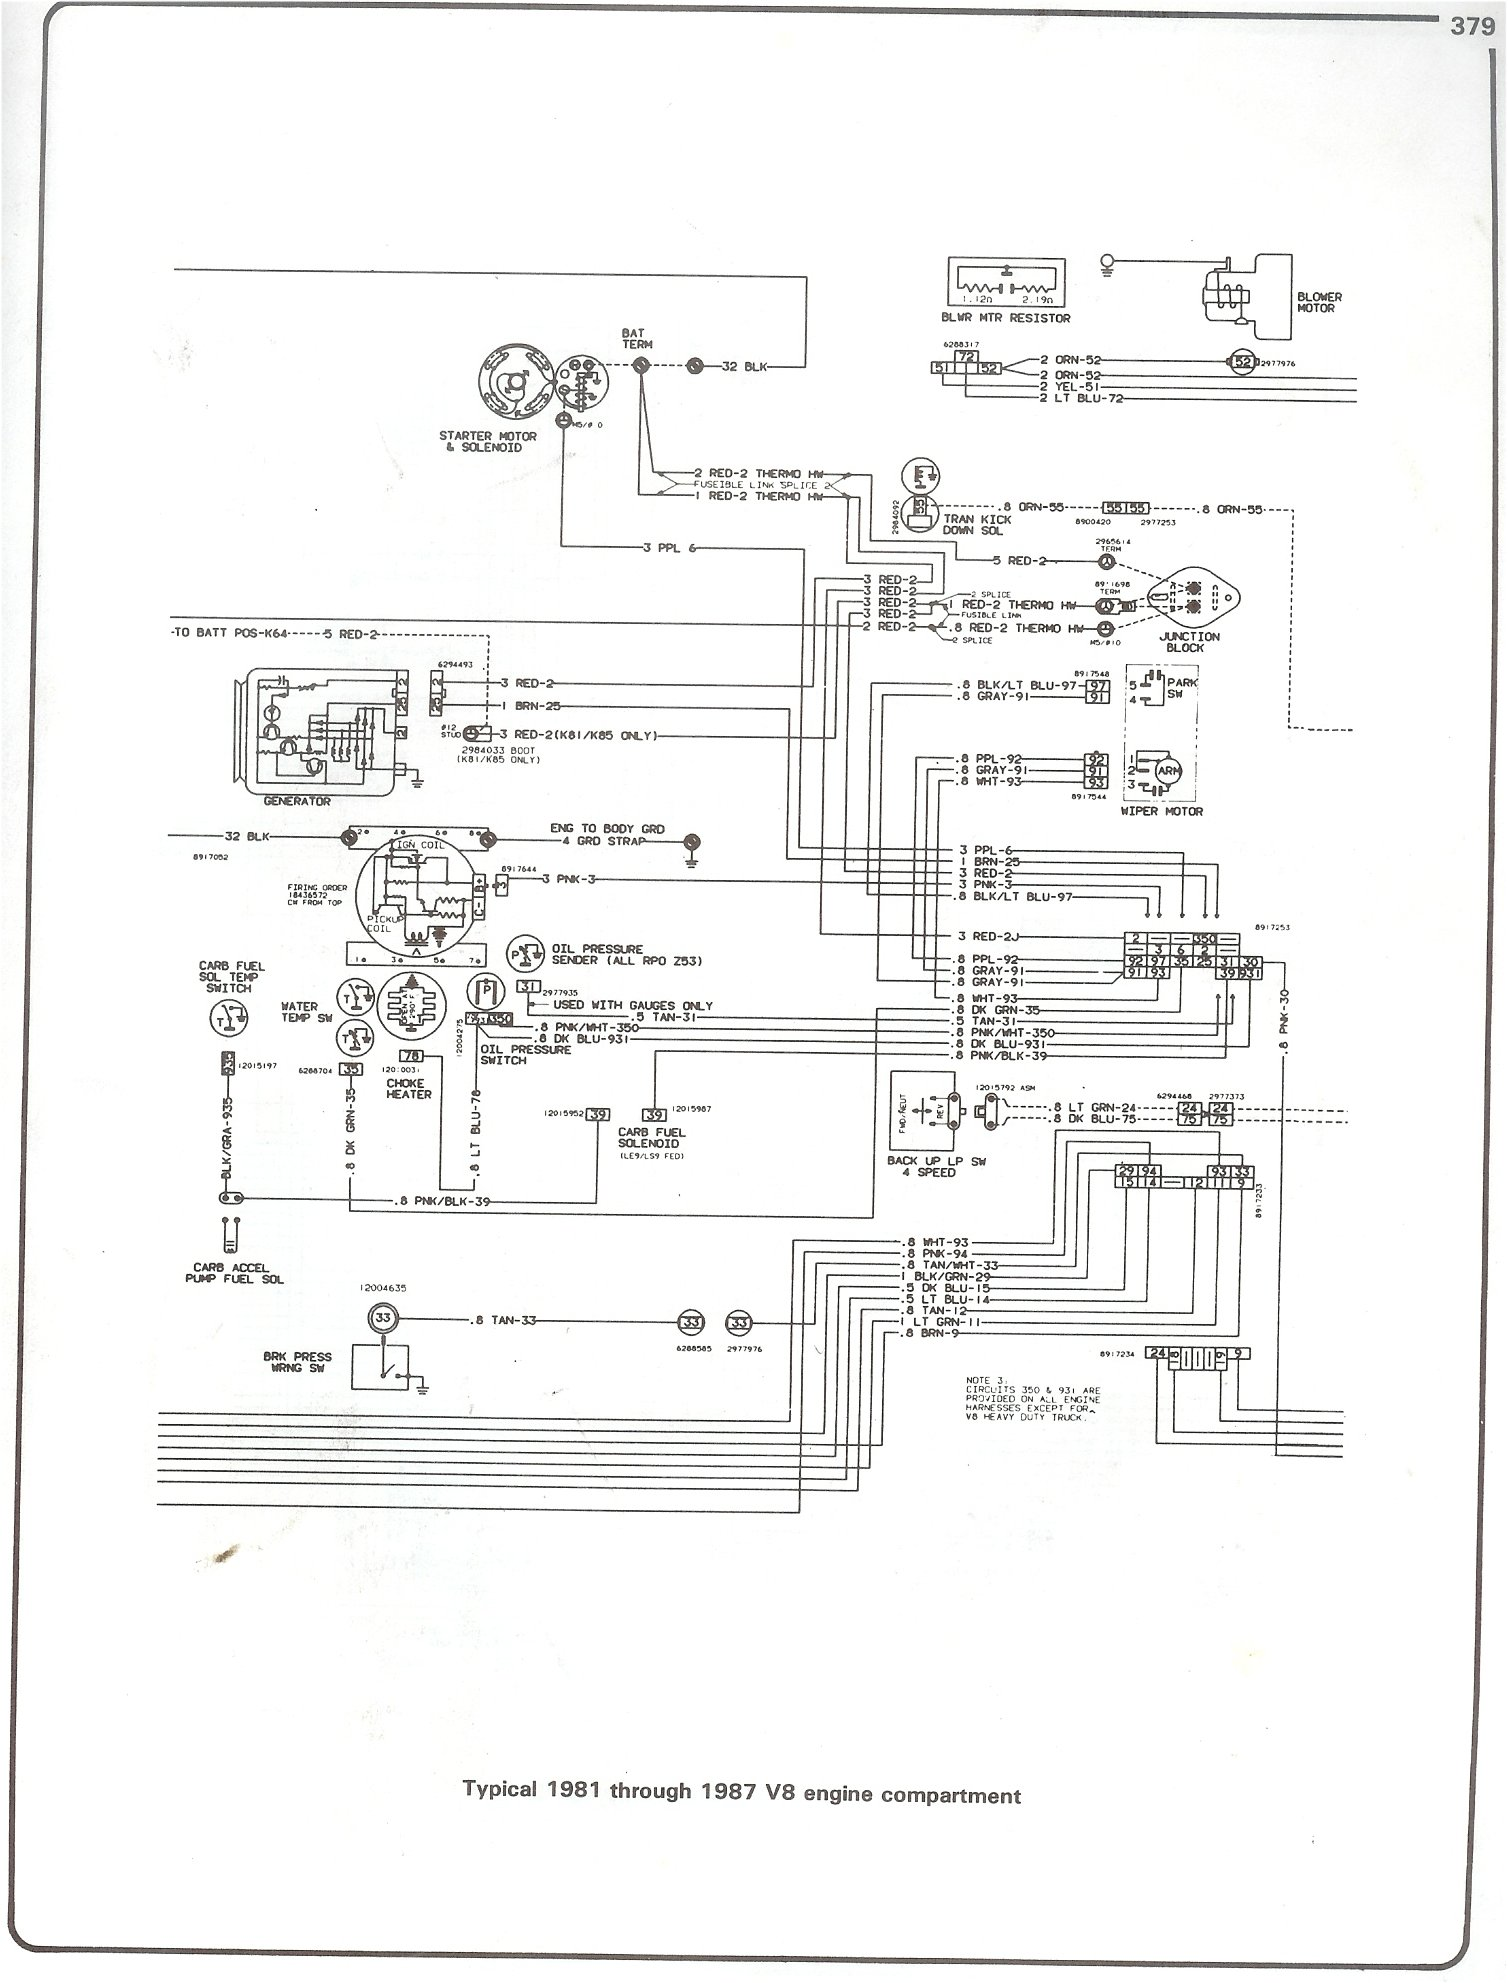 81 87_V8_engine complete 73 87 wiring diagrams 1968 Chevy C10 Wiring-Diagram at fashall.co